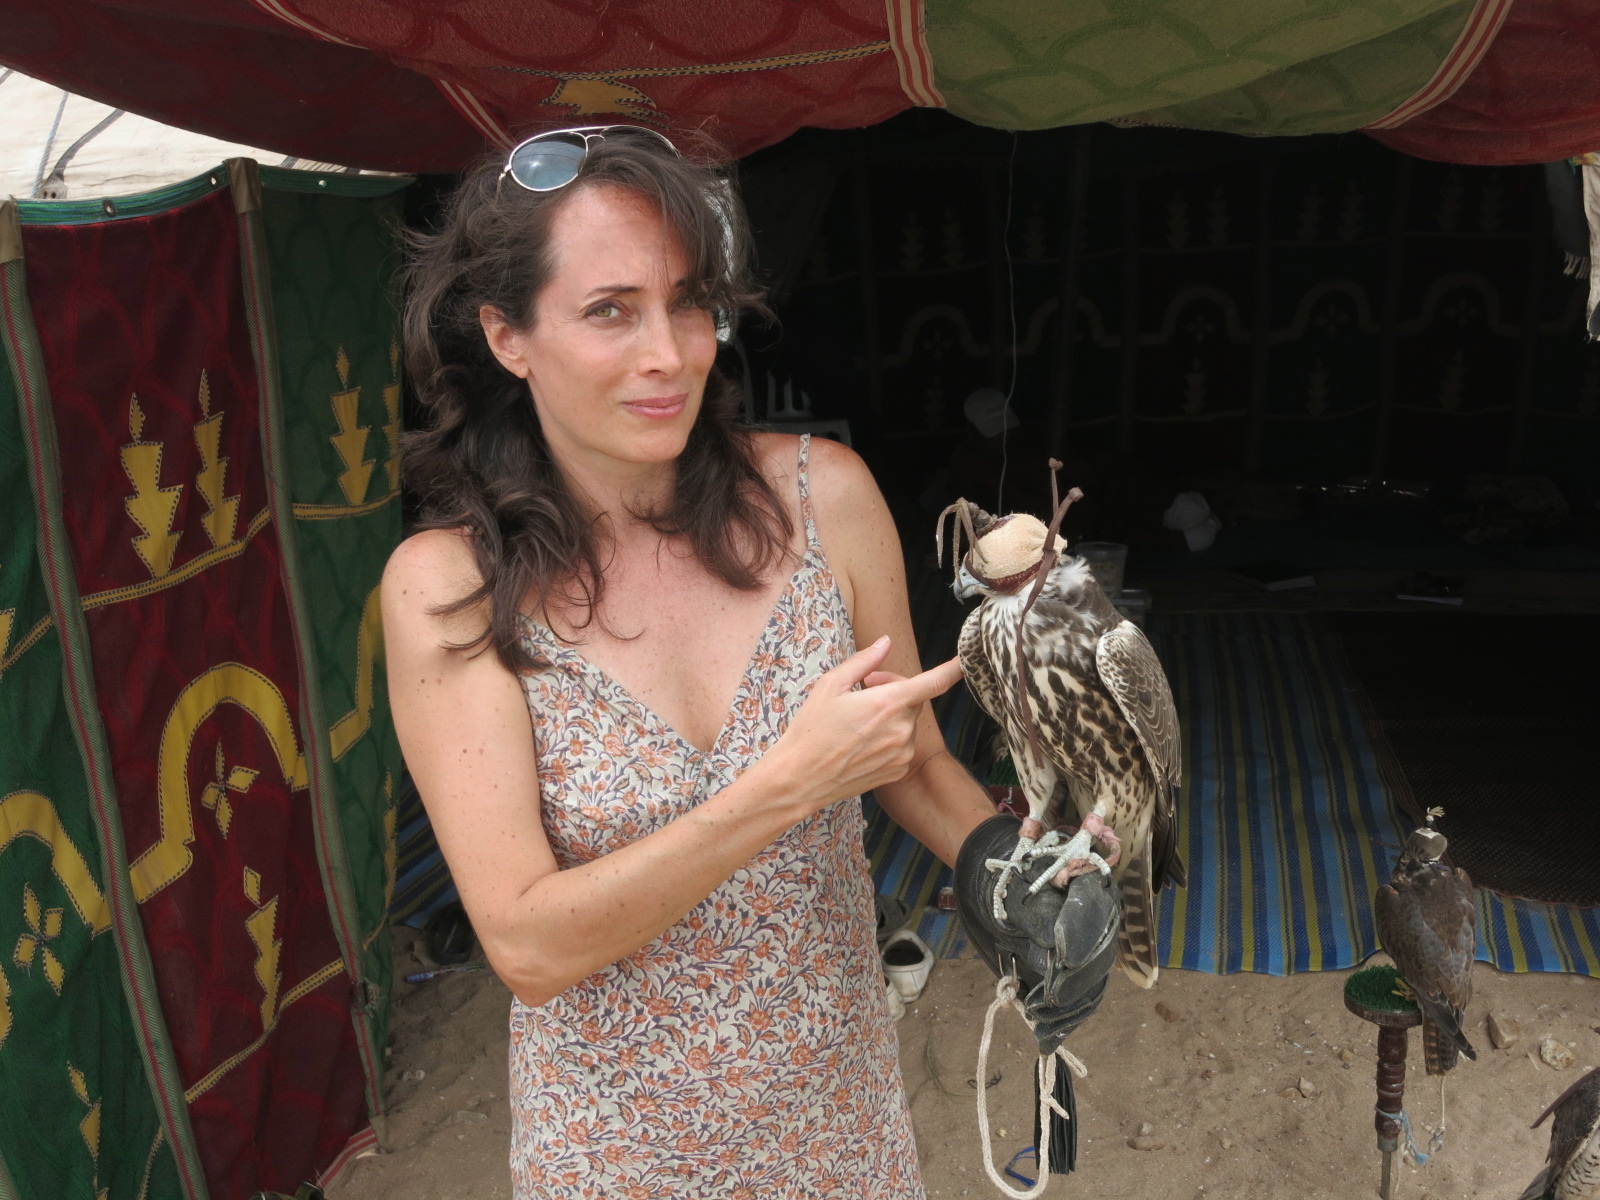 phoebe-eaton-with-falcon .jpg